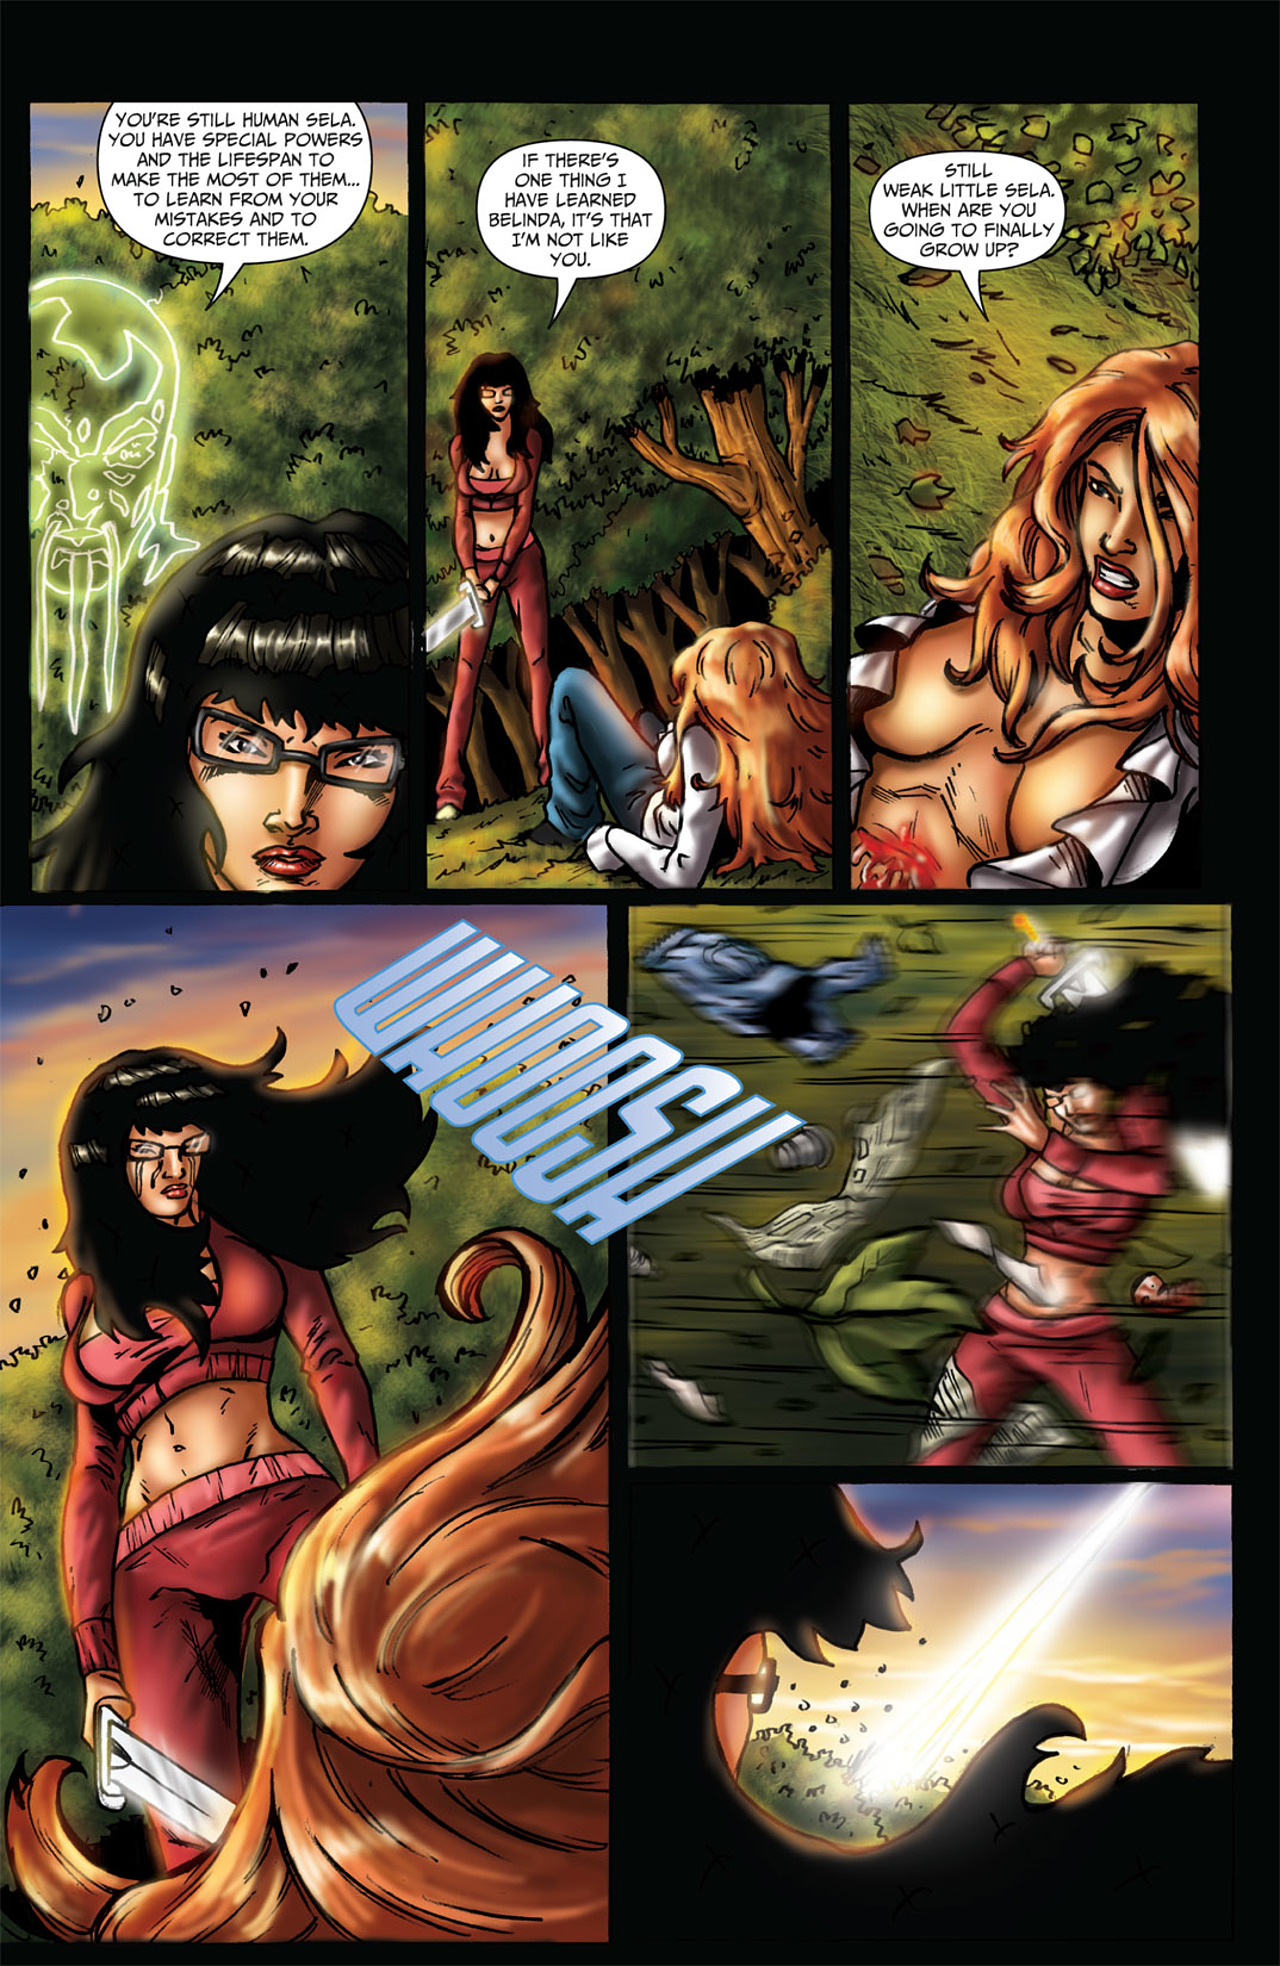 Grimm Fairy Tales (2005) Issue #43 #46 - English 20